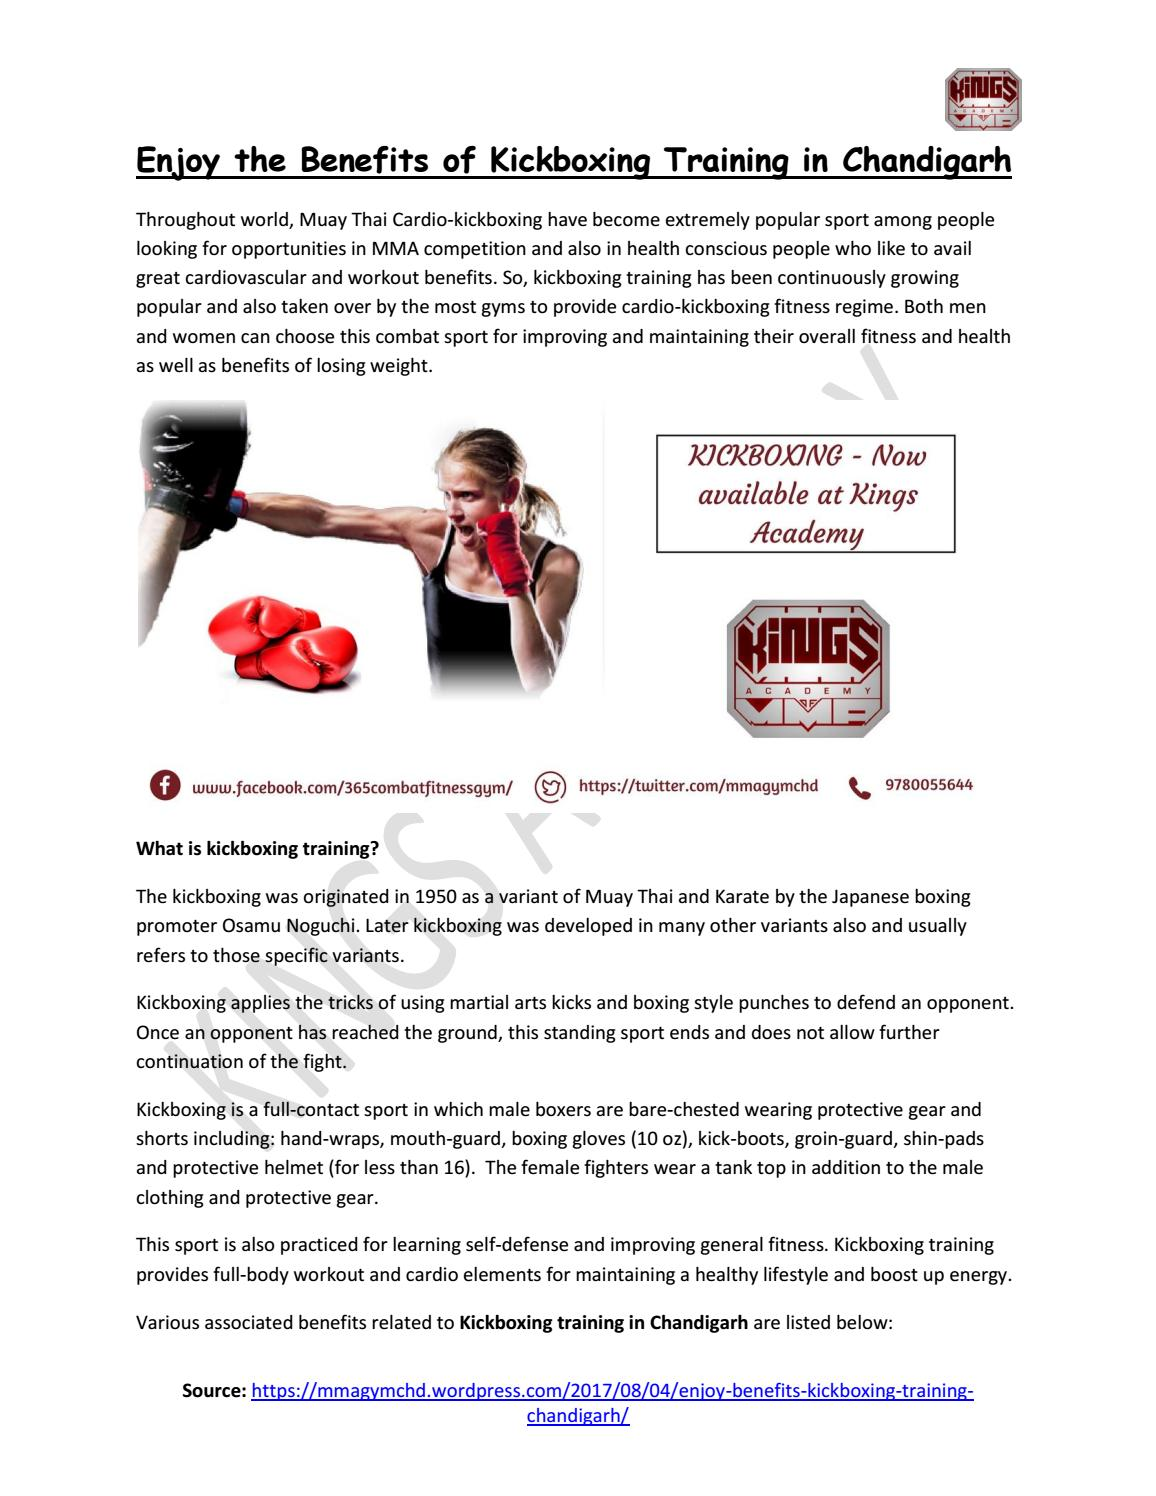 Kickboxing training in Chandigarh | Kings Academy by Kings